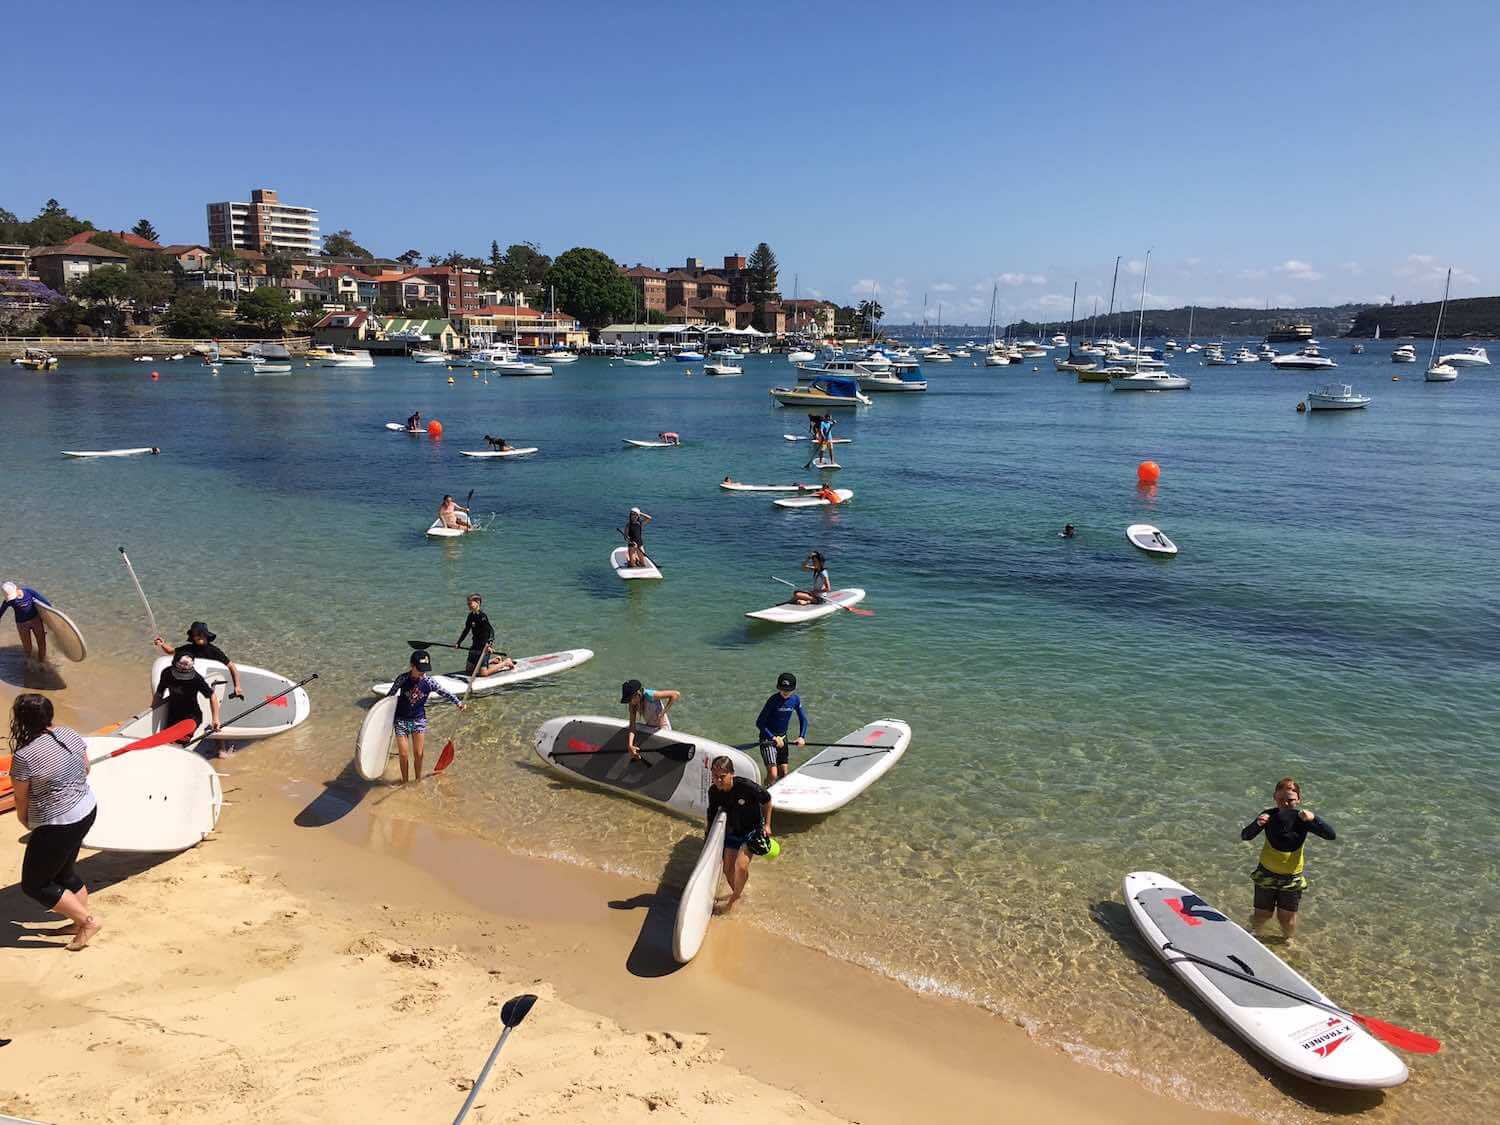 Experience Sydney harbour like the school children do - by stand-up paddle board